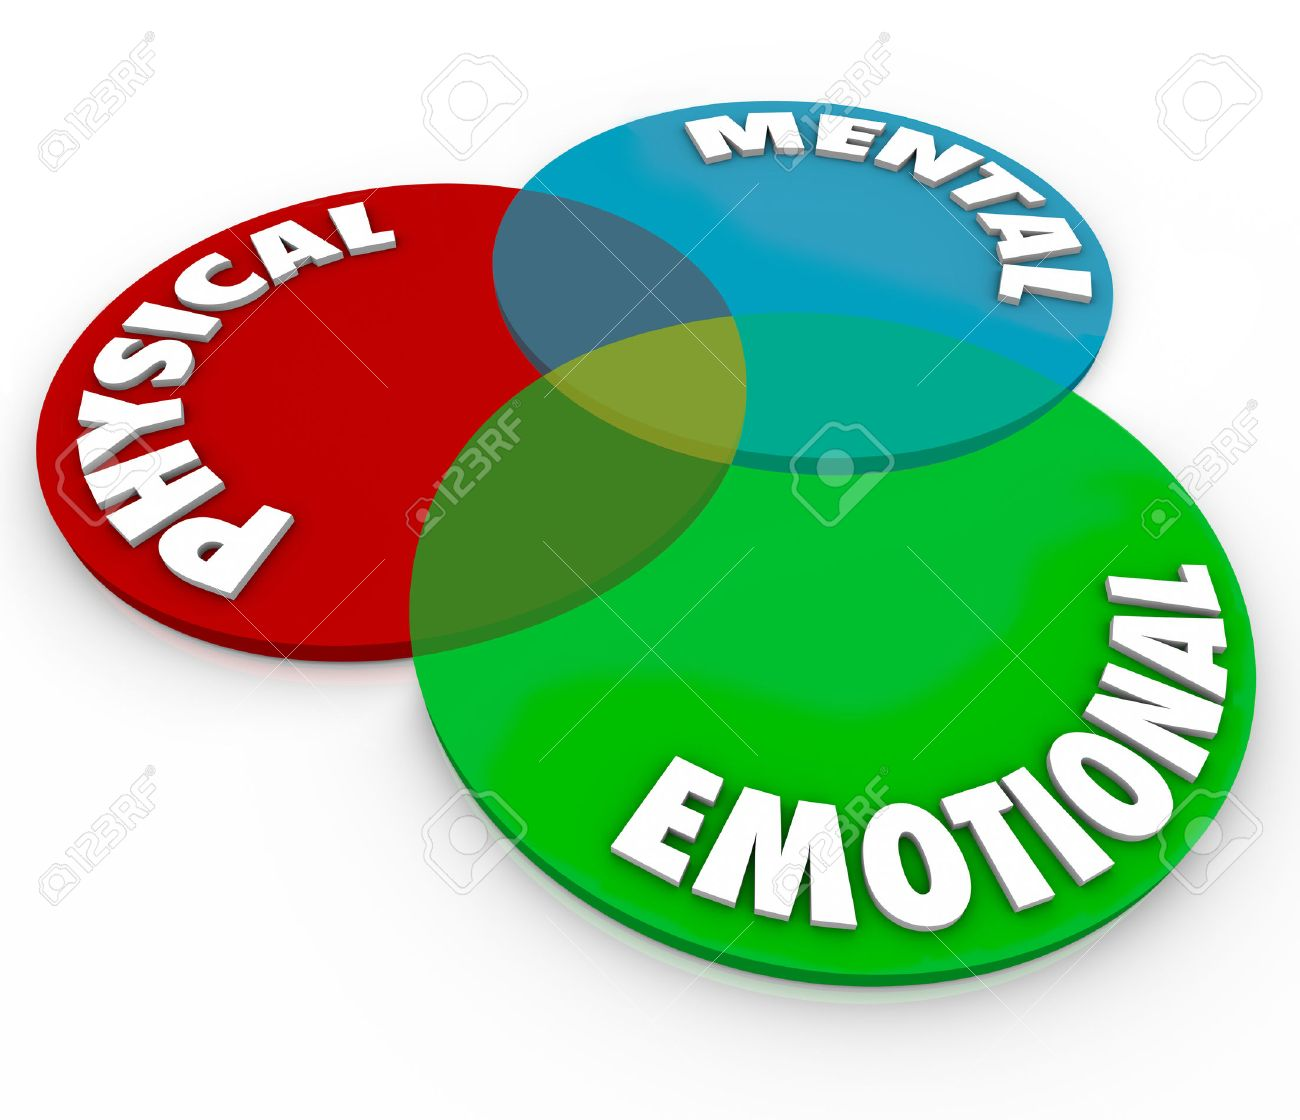 Venn diagram stock photos royalty free business images physical mental and emotional words on a venn diagram to illustrate total balance of mind pooptronica Choice Image